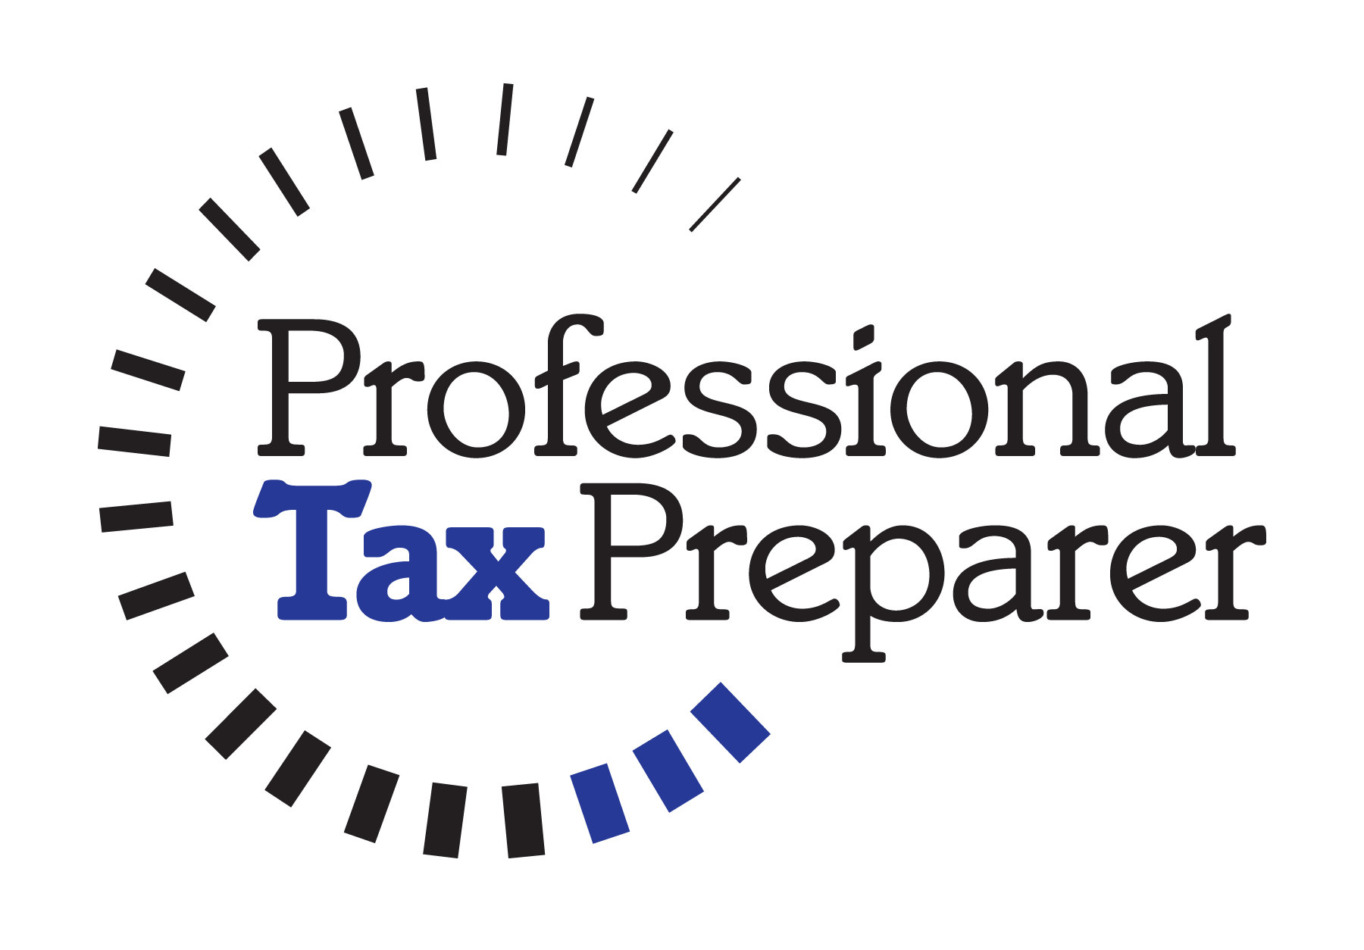 Professional Tax Preparer™ Certification